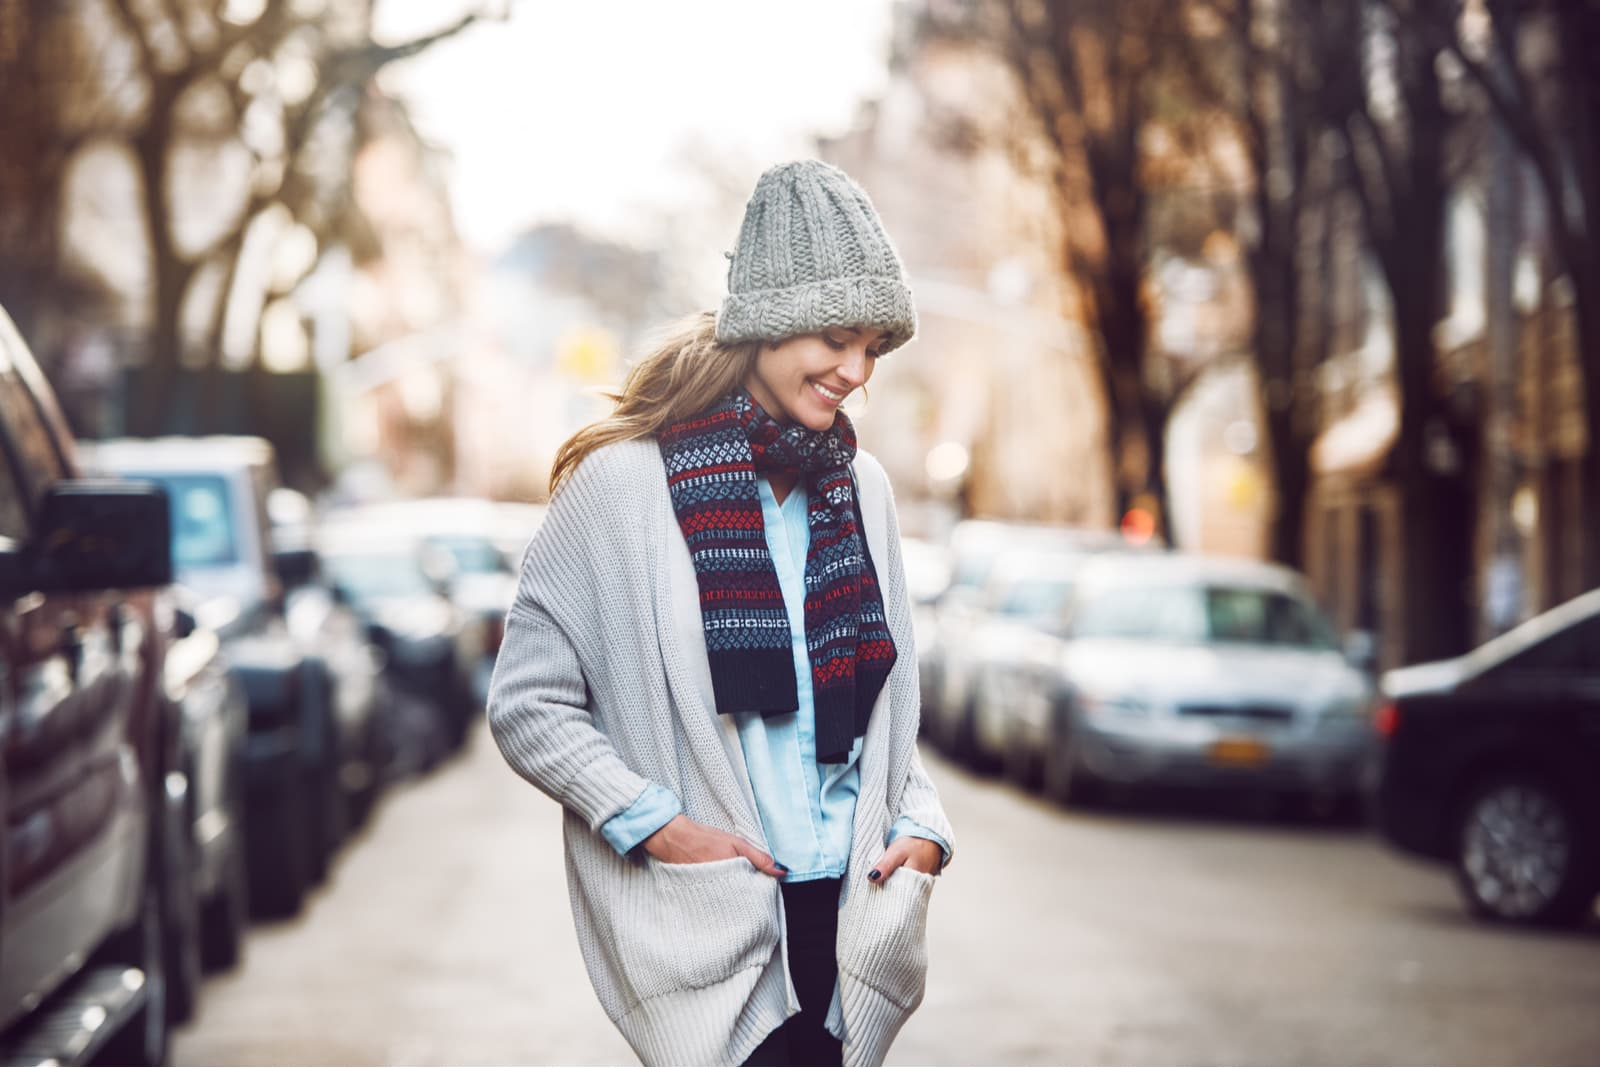 a smiling woman in a sweater with a hat and scarf walks down the street